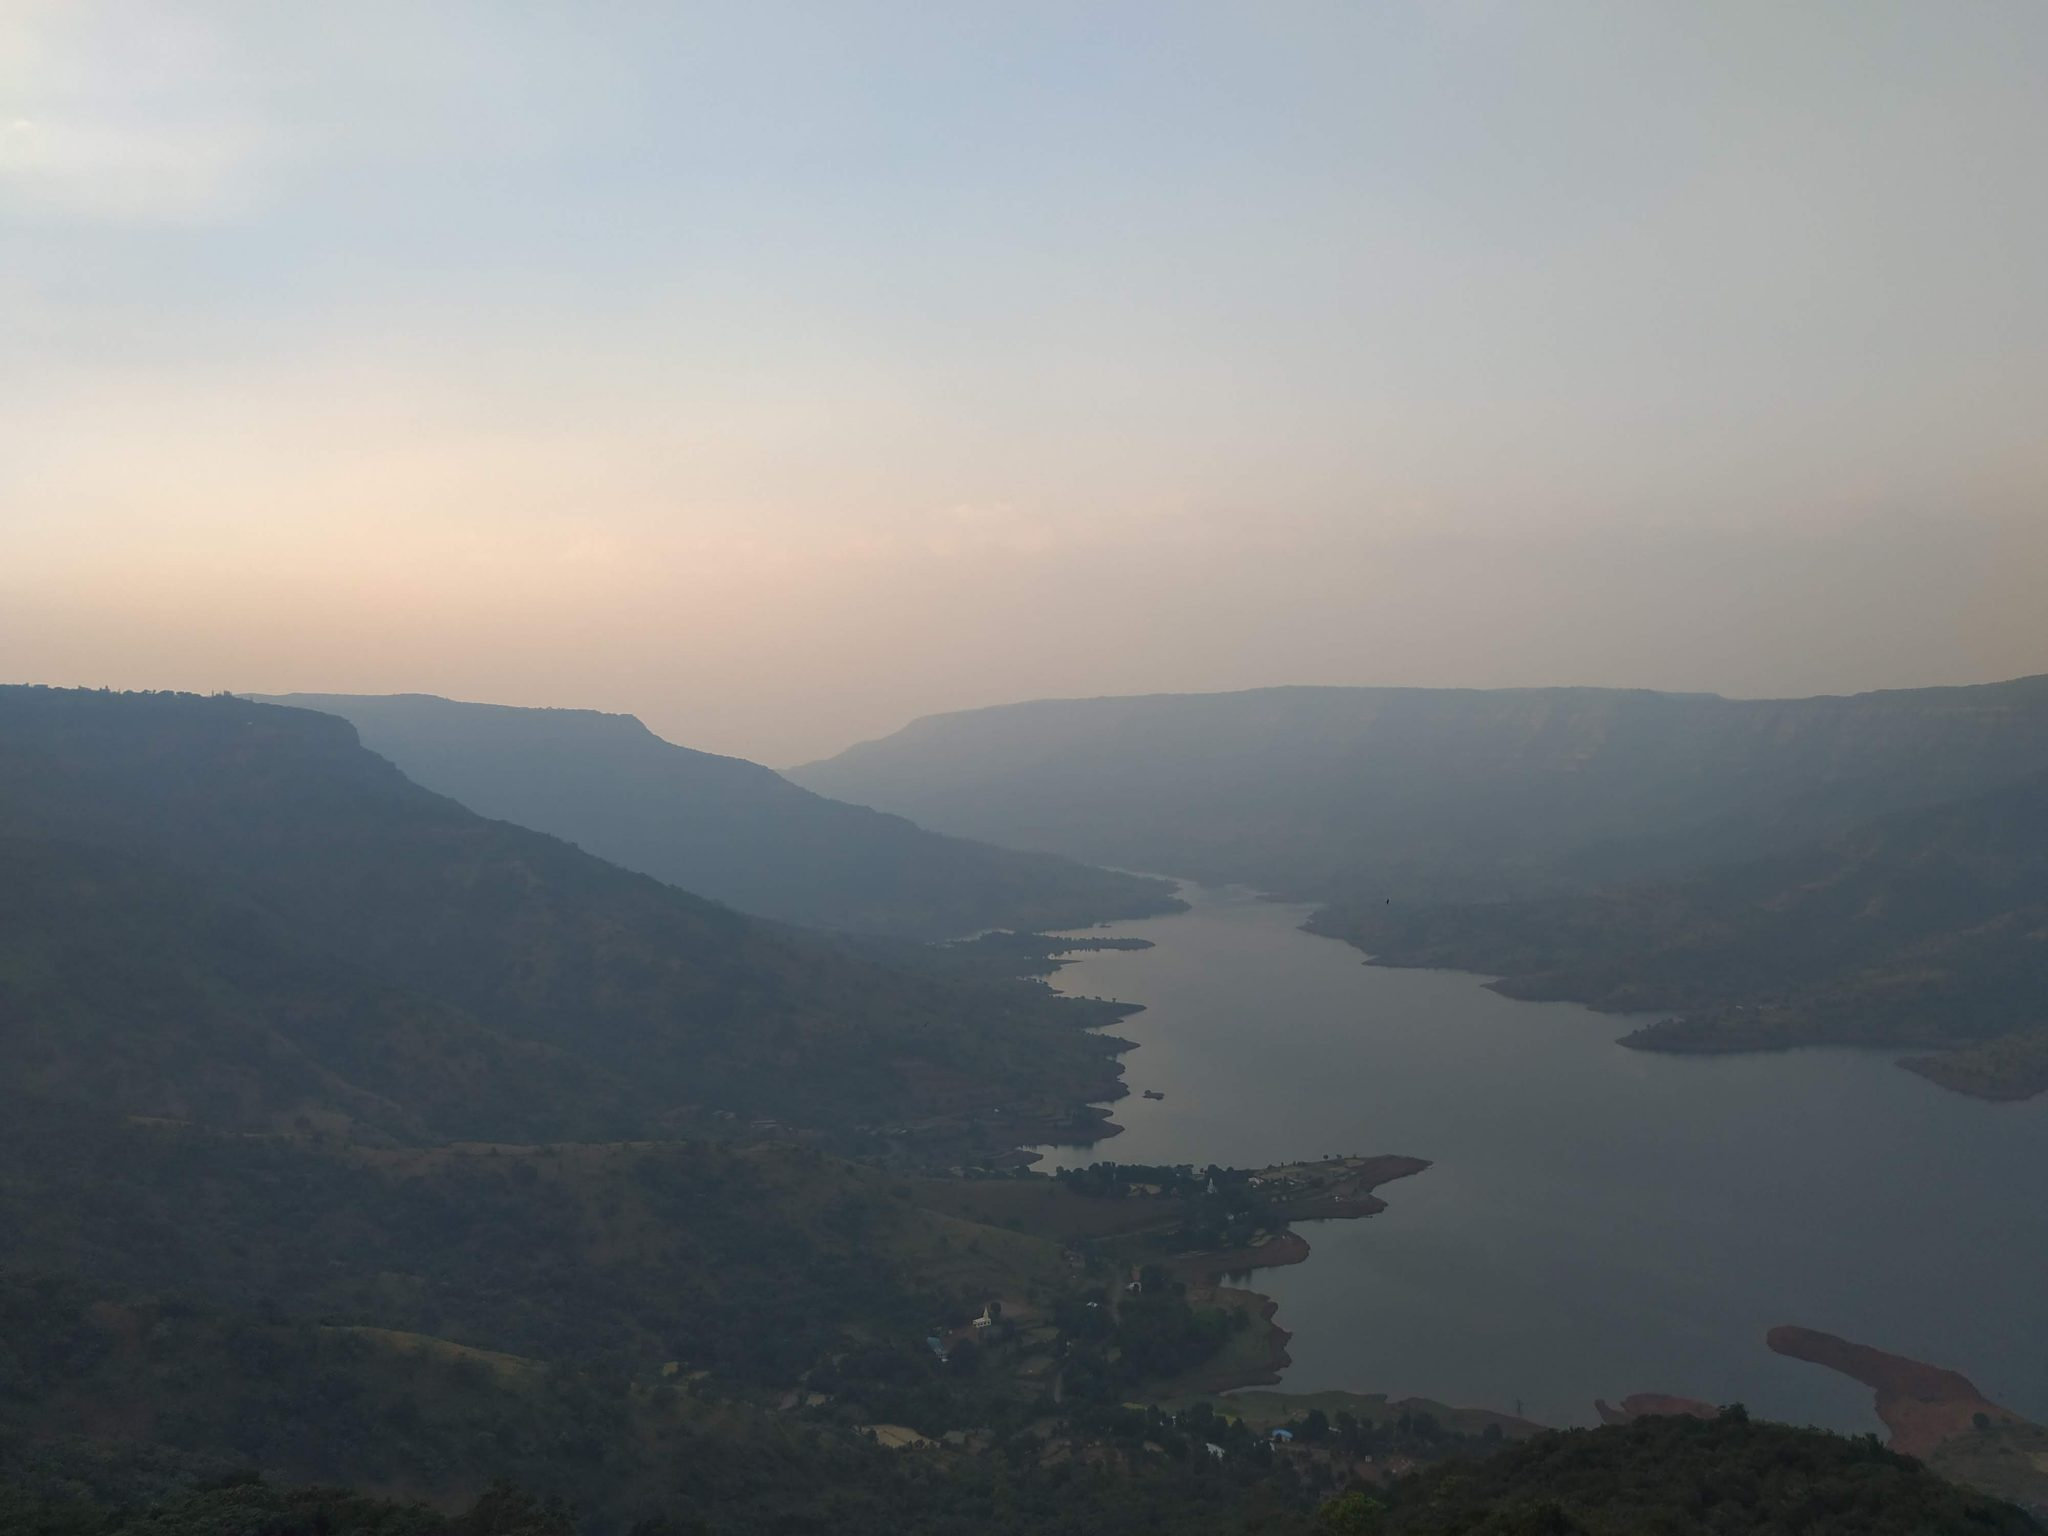 Evening visit to Kates Point, Elephant's Head, Echo Point, Needle hole Point in Mahabaleshwar